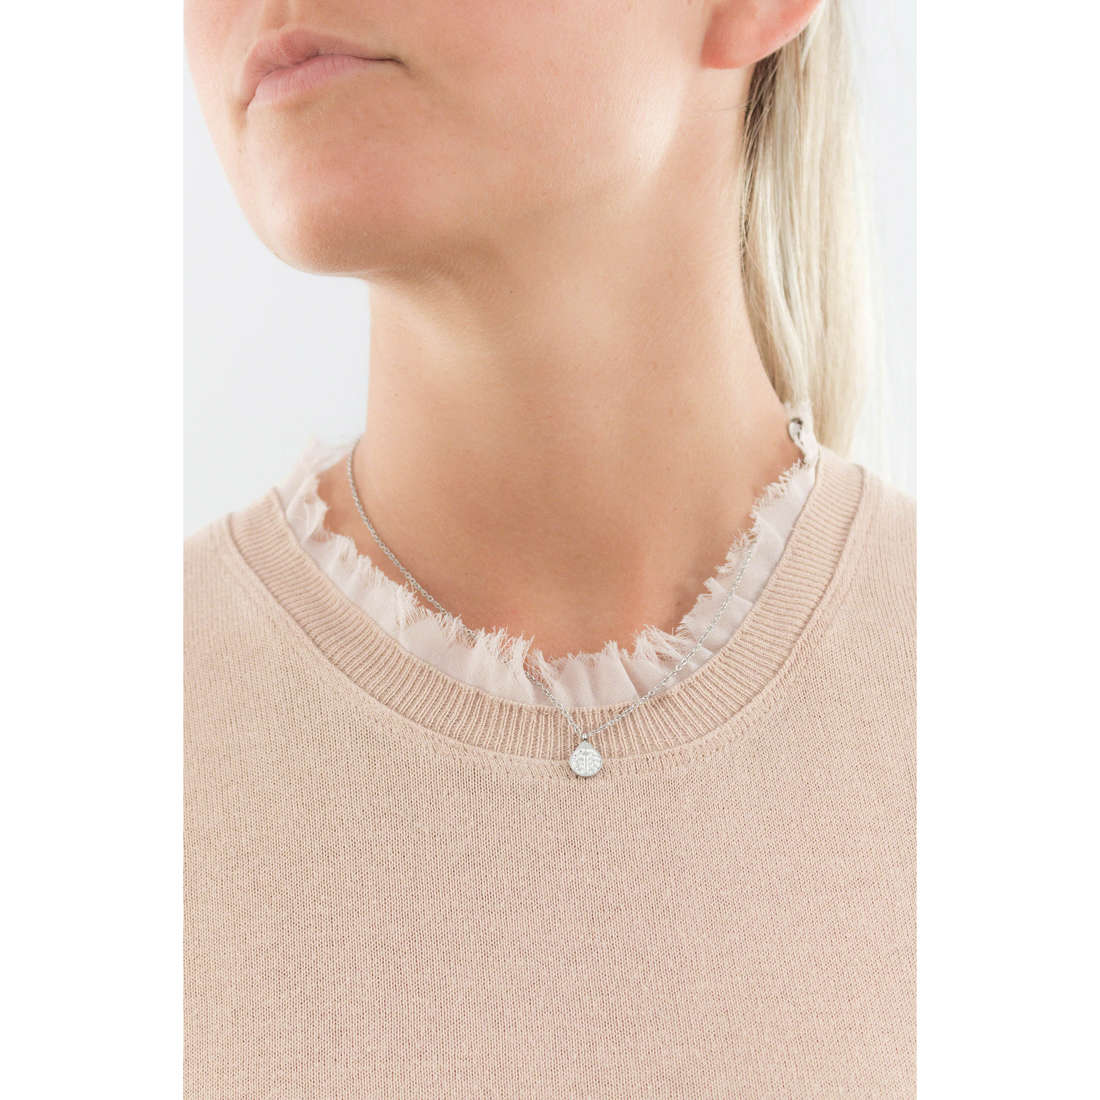 Marlù necklaces Time To woman 18CN038 indosso